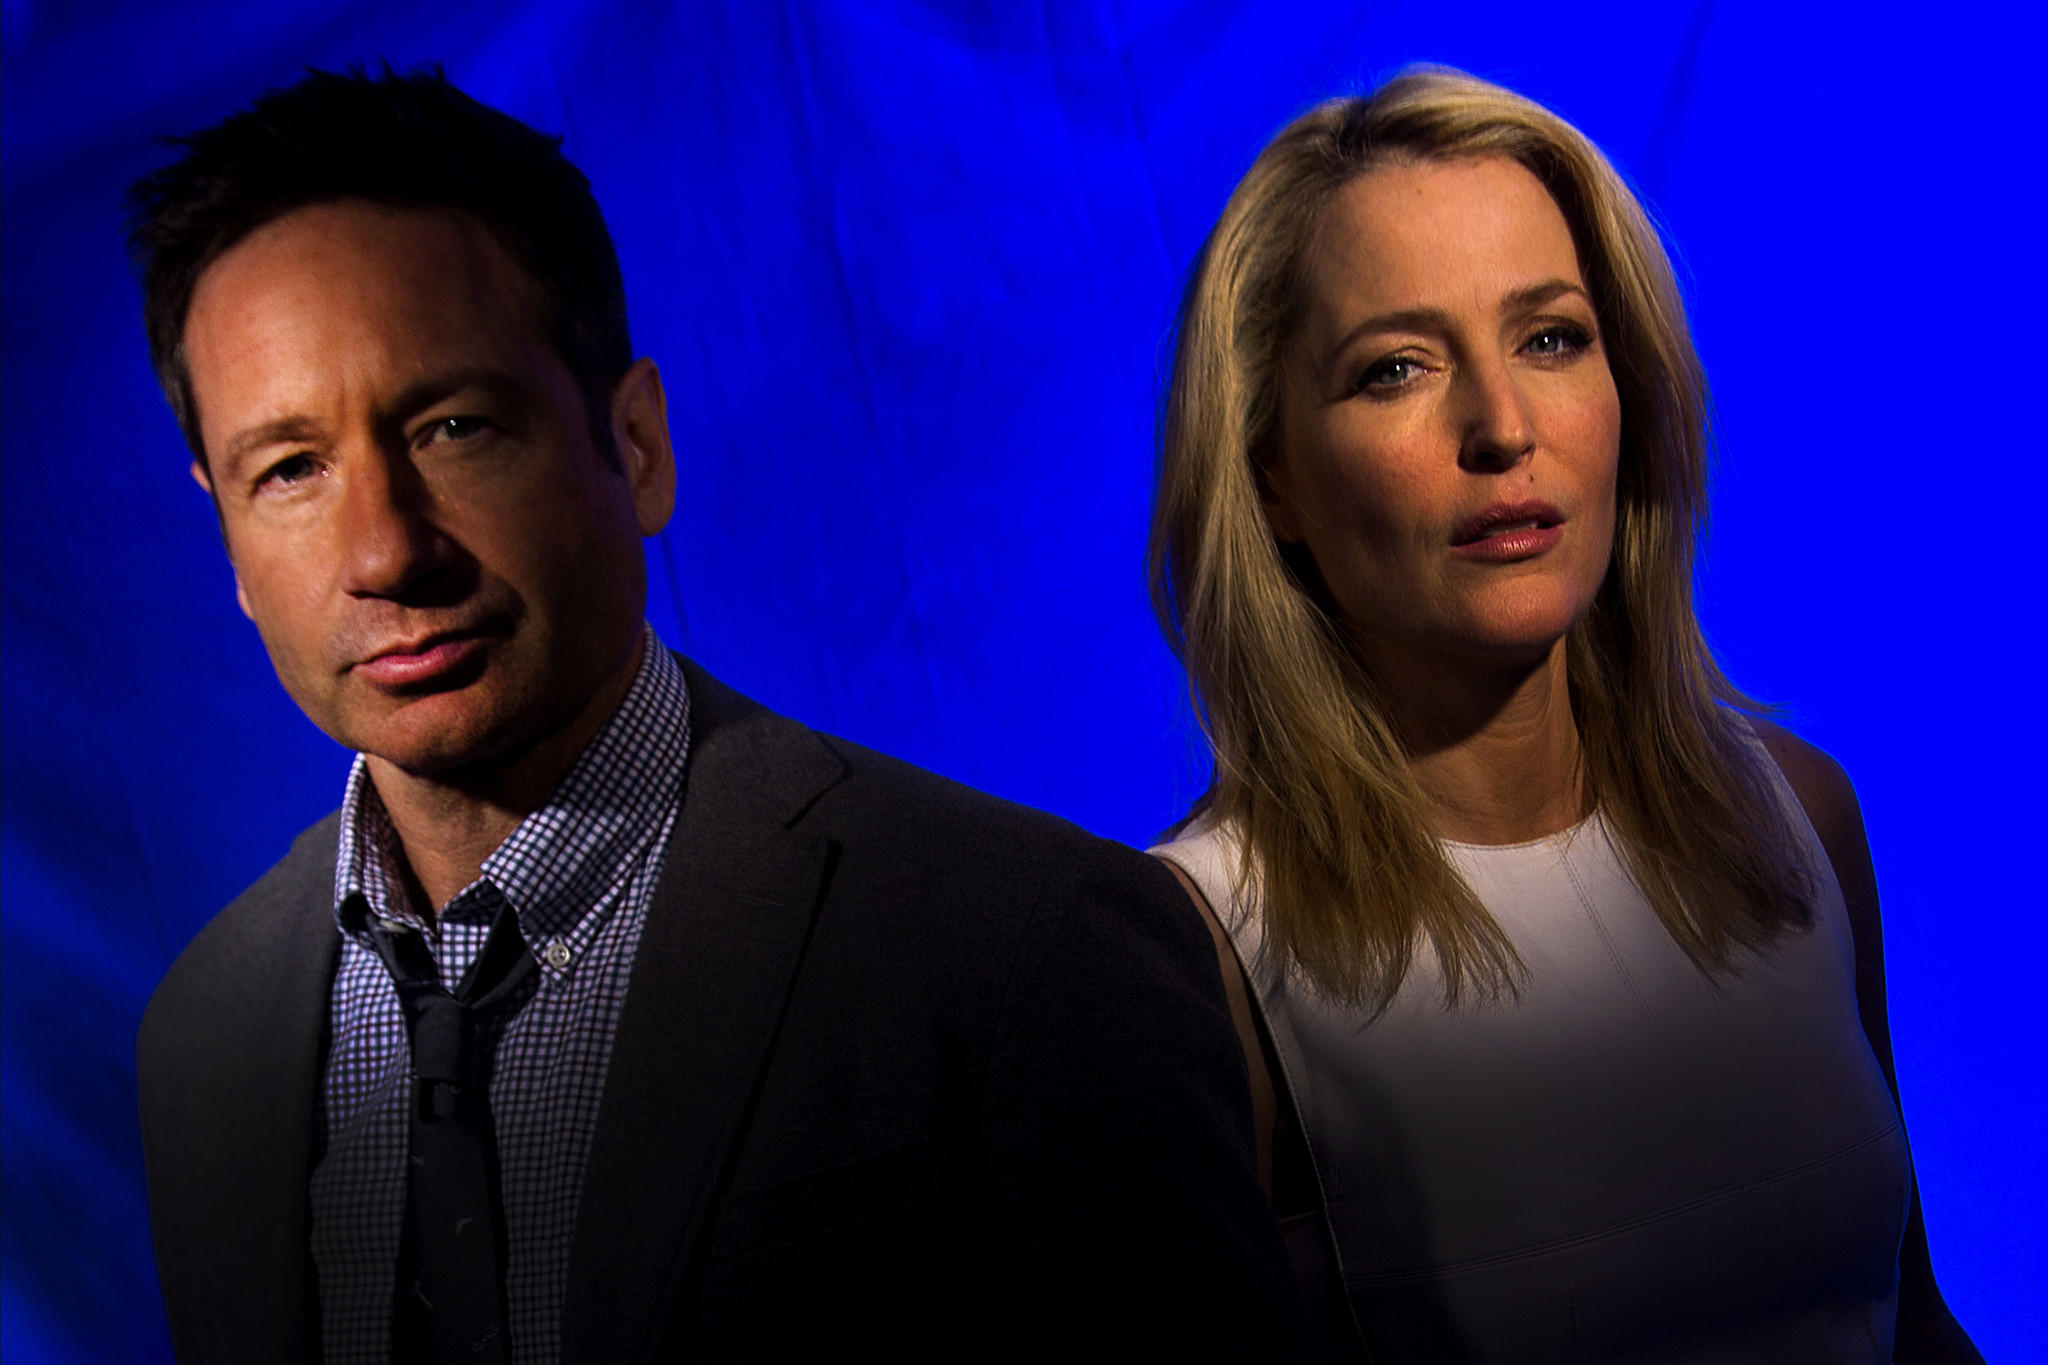 """David Duchovny and Gillian Anderson have returned for """"The X-Files."""" (Kirk McKoy / Los Angeles Times)"""